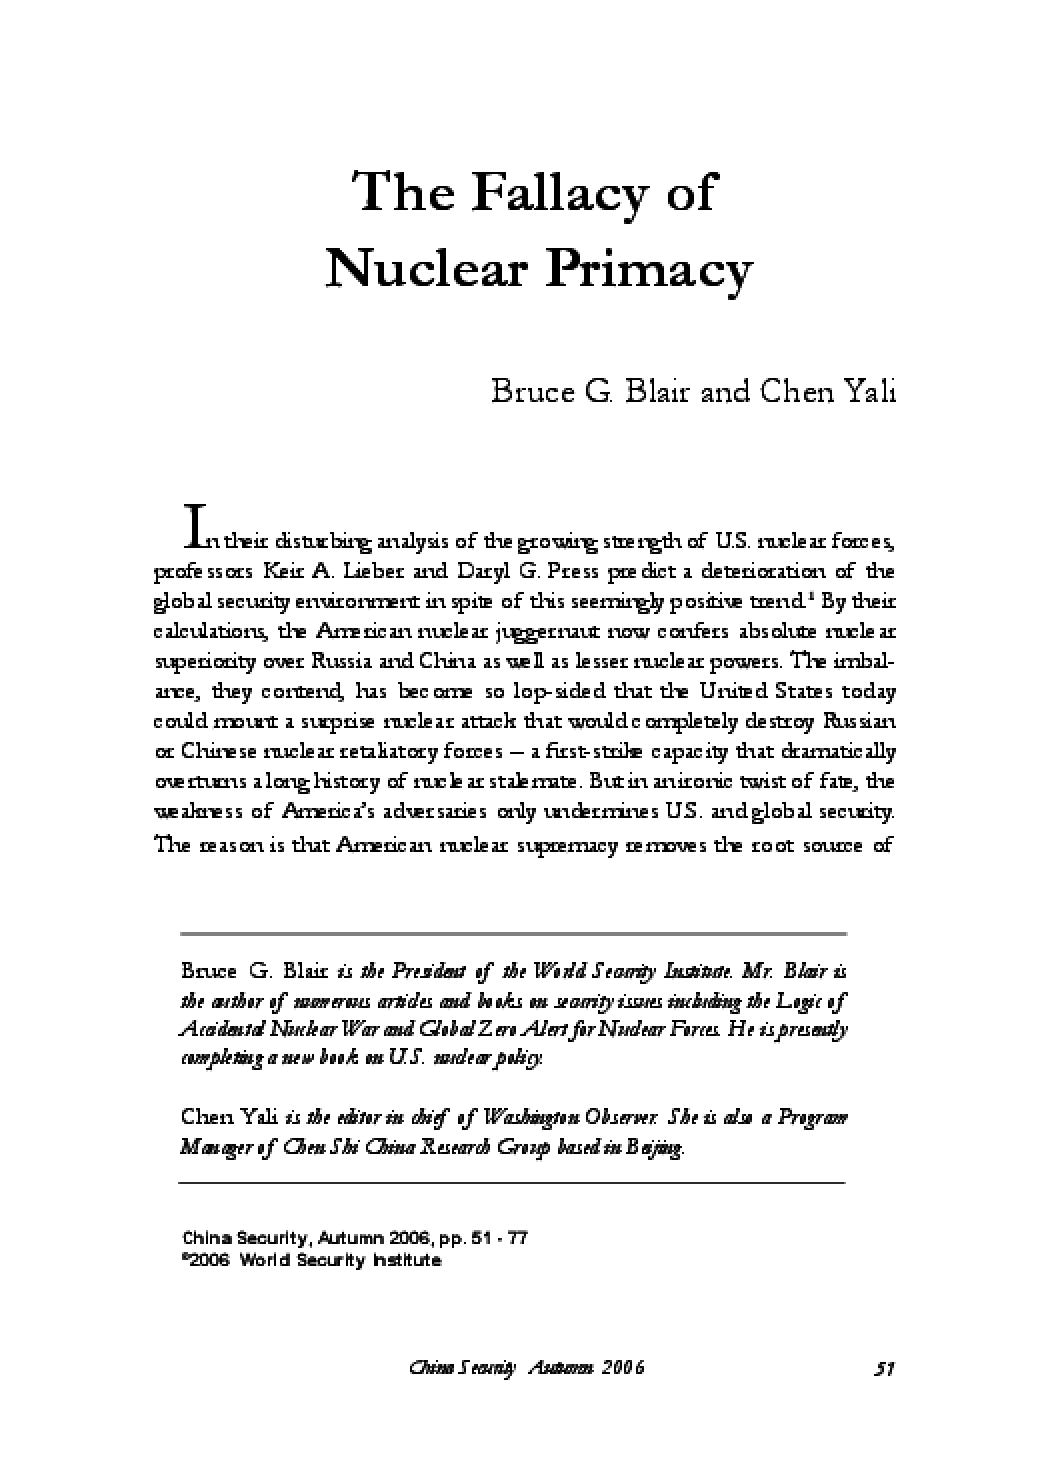 The Fallacy of Nuclear Primacy